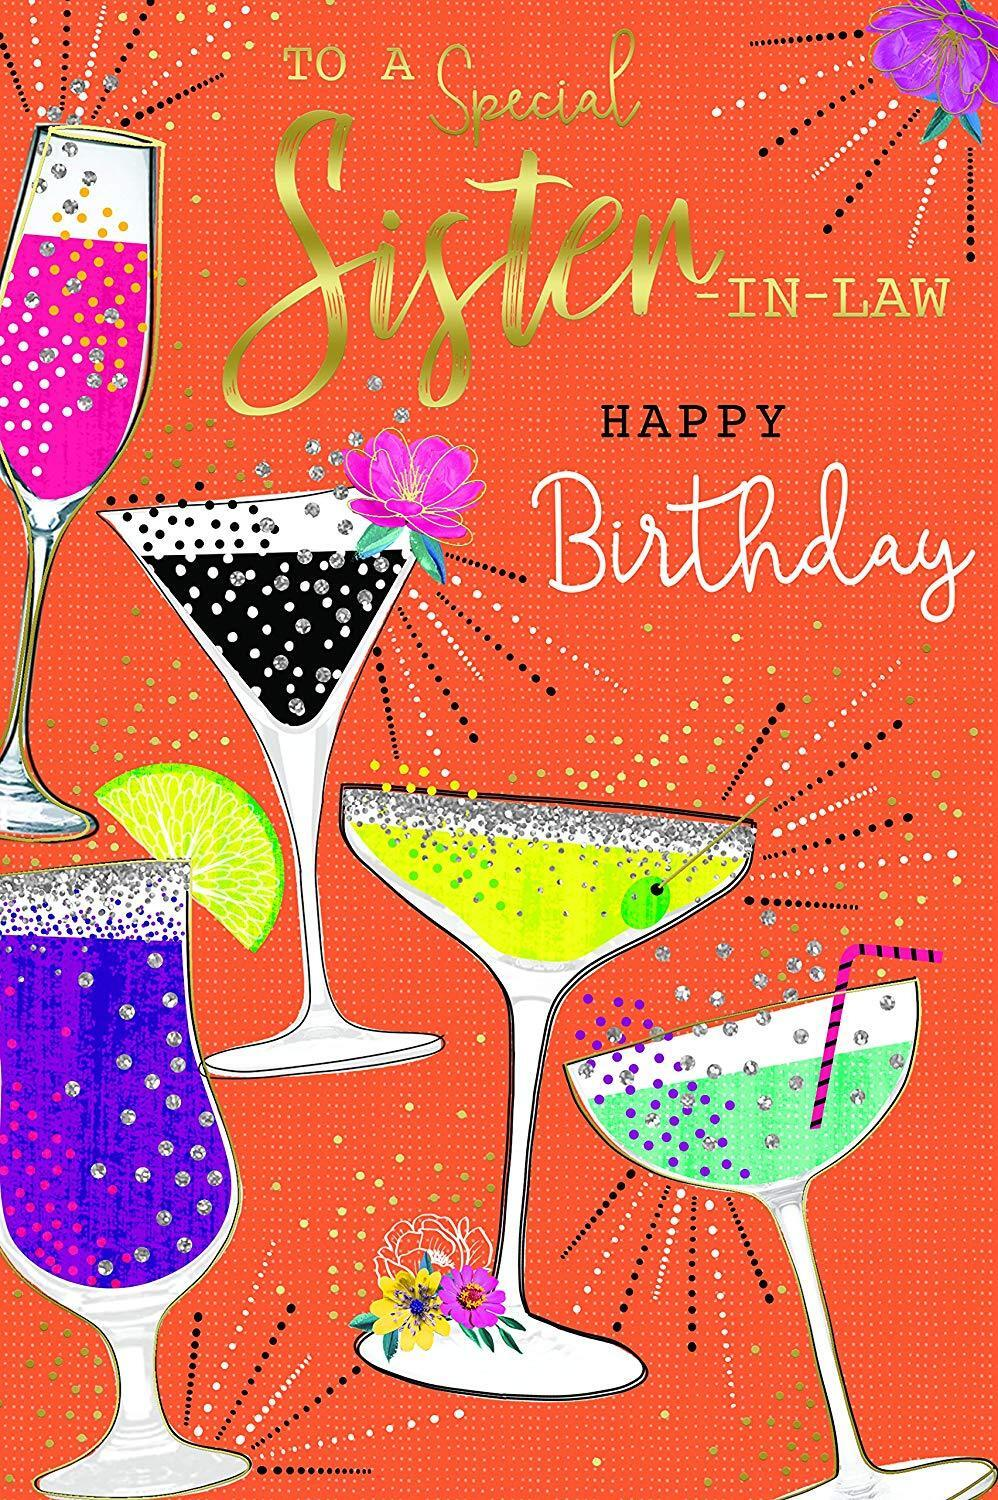 To A Special Sister In Law Happy Birthday Cocktails Design Kingfisher Cards For Sale Online Ebay